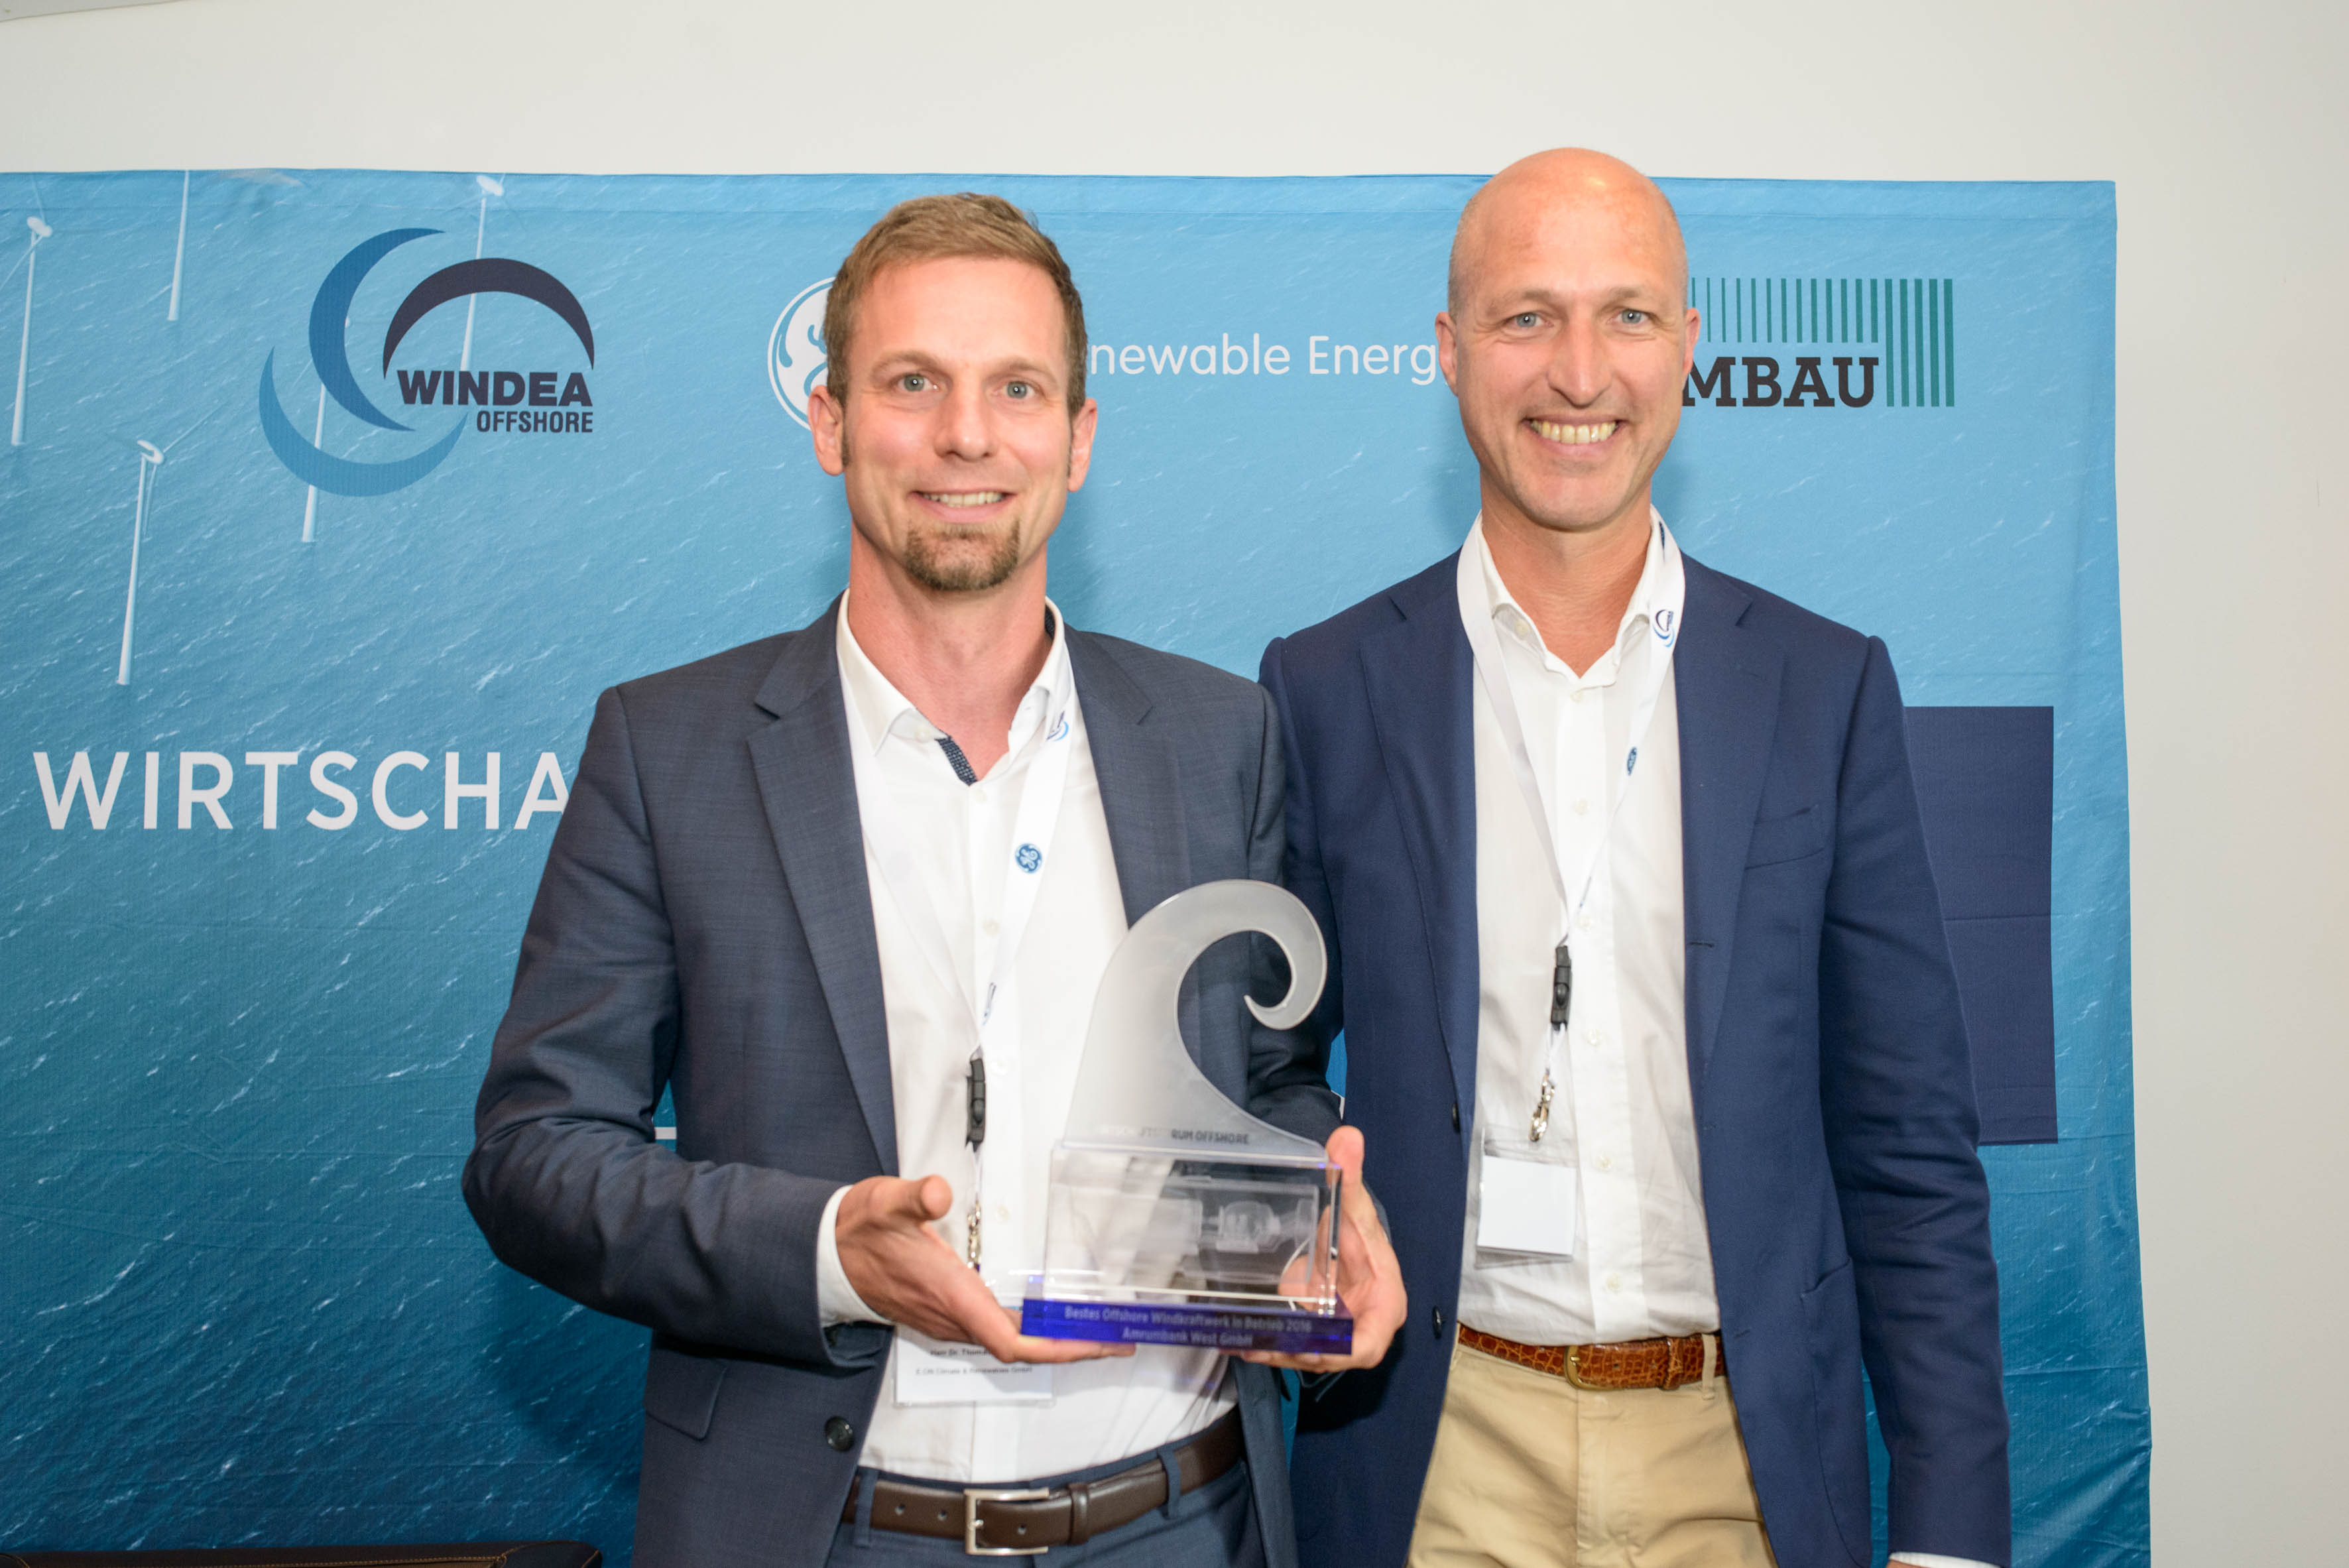 "Dr. Thomas Michel, Head of Operations Offshore Wind Nordic & Germany E.ON und Sven Utermöhlen, COO der E.ON Climate & Renewables GmbH mit der Auszeichnung ""Bestes Offshore Windkraftwerk in Betrieb 2016"""